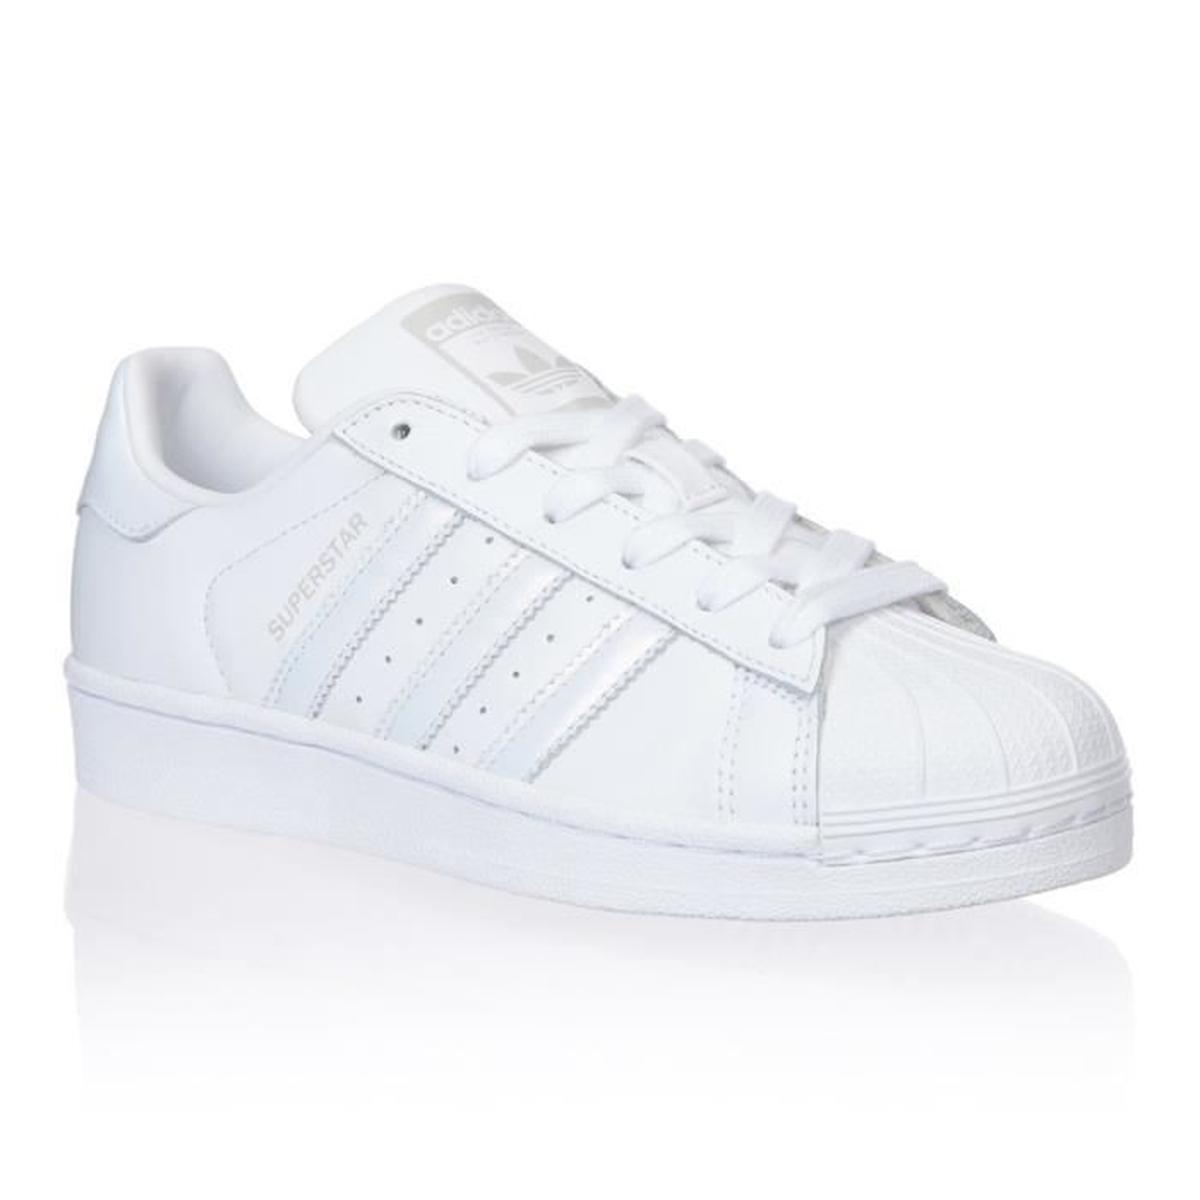 check-out 84c15 30026 Promotion de groupe adidas superstar femme blanc.Dédié à ...